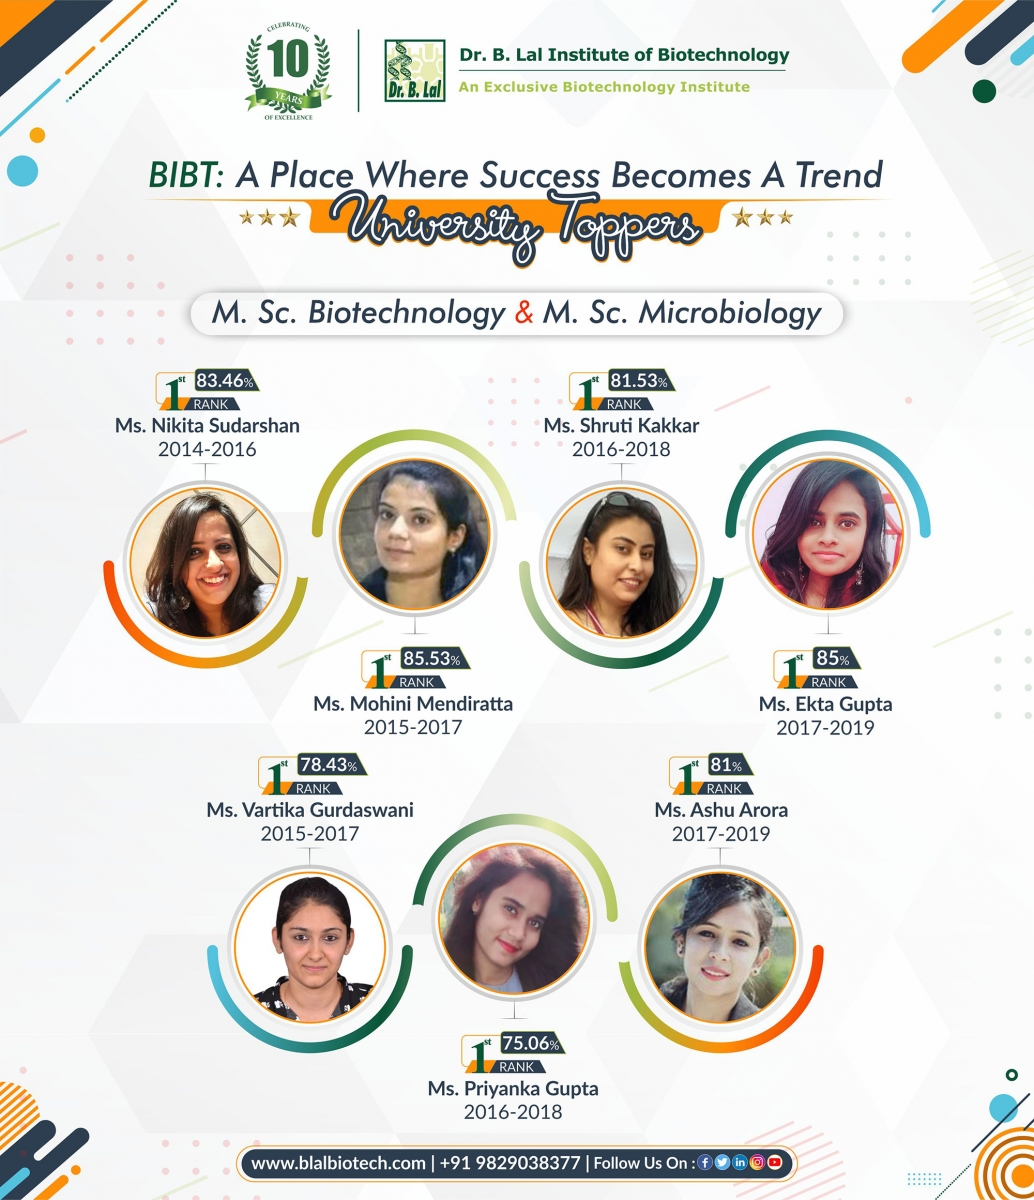 Rajasthan University Toppers   Dr. B. Lal Institute of Biotechnology